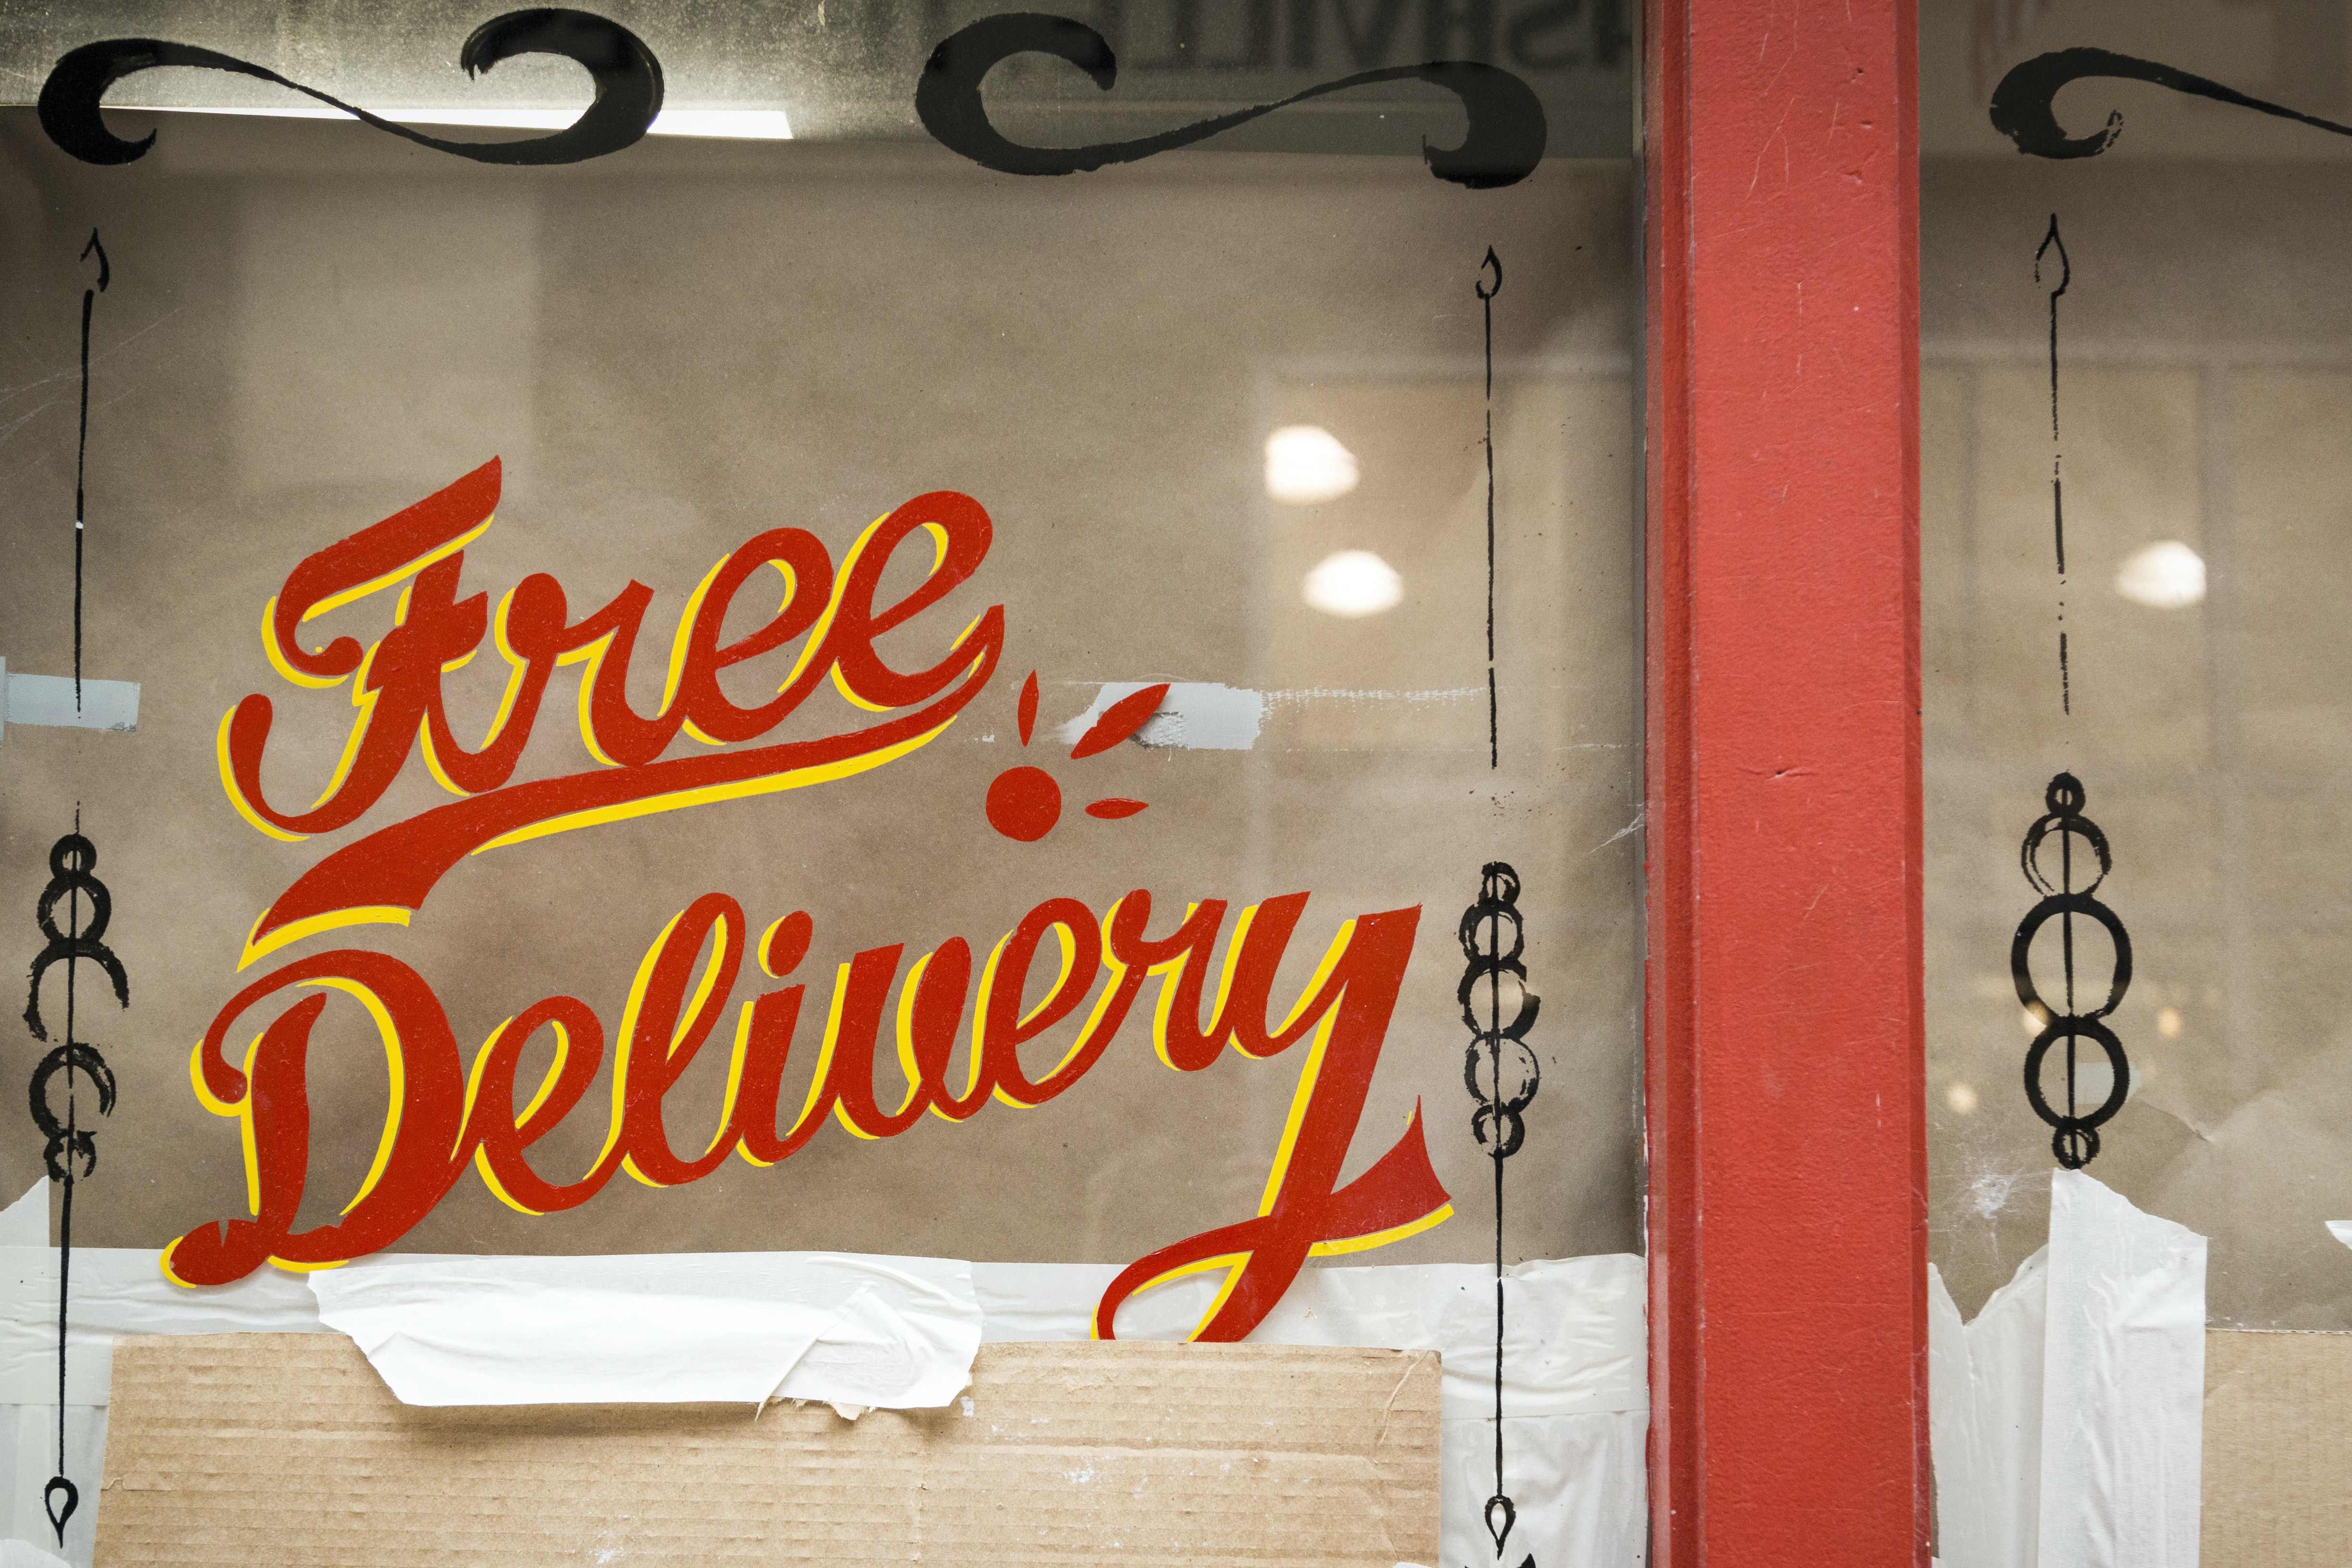 Free Delivery glass window signage